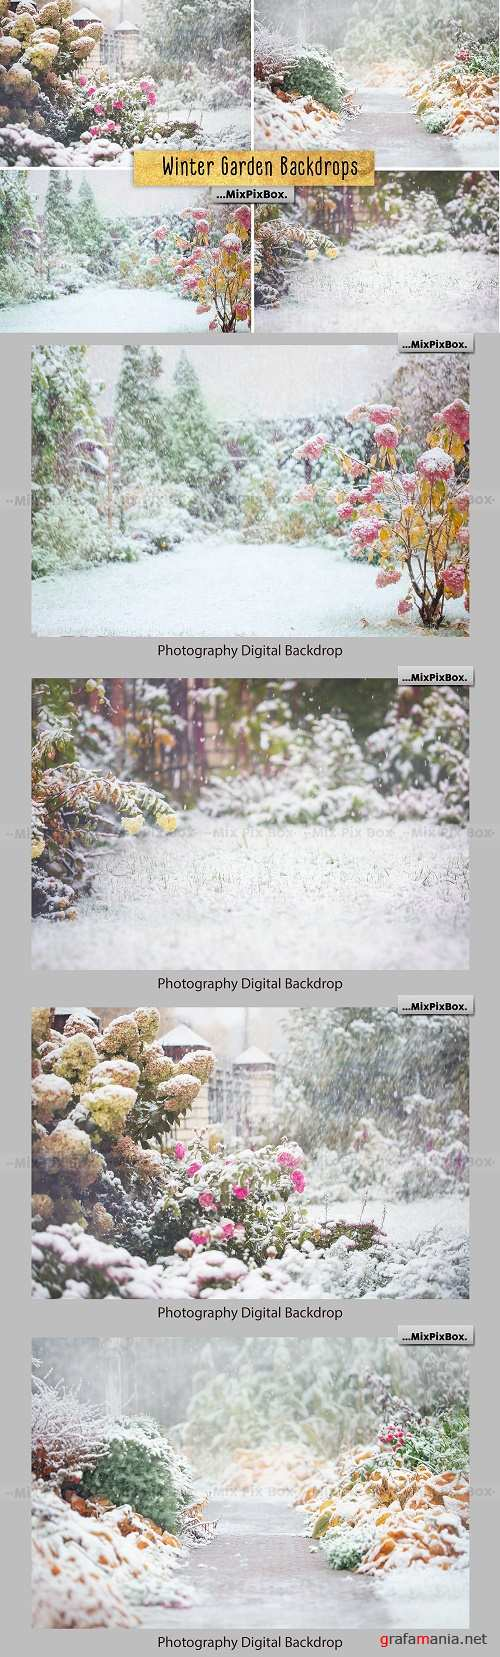 Winter Garden Backdrops - 4230186